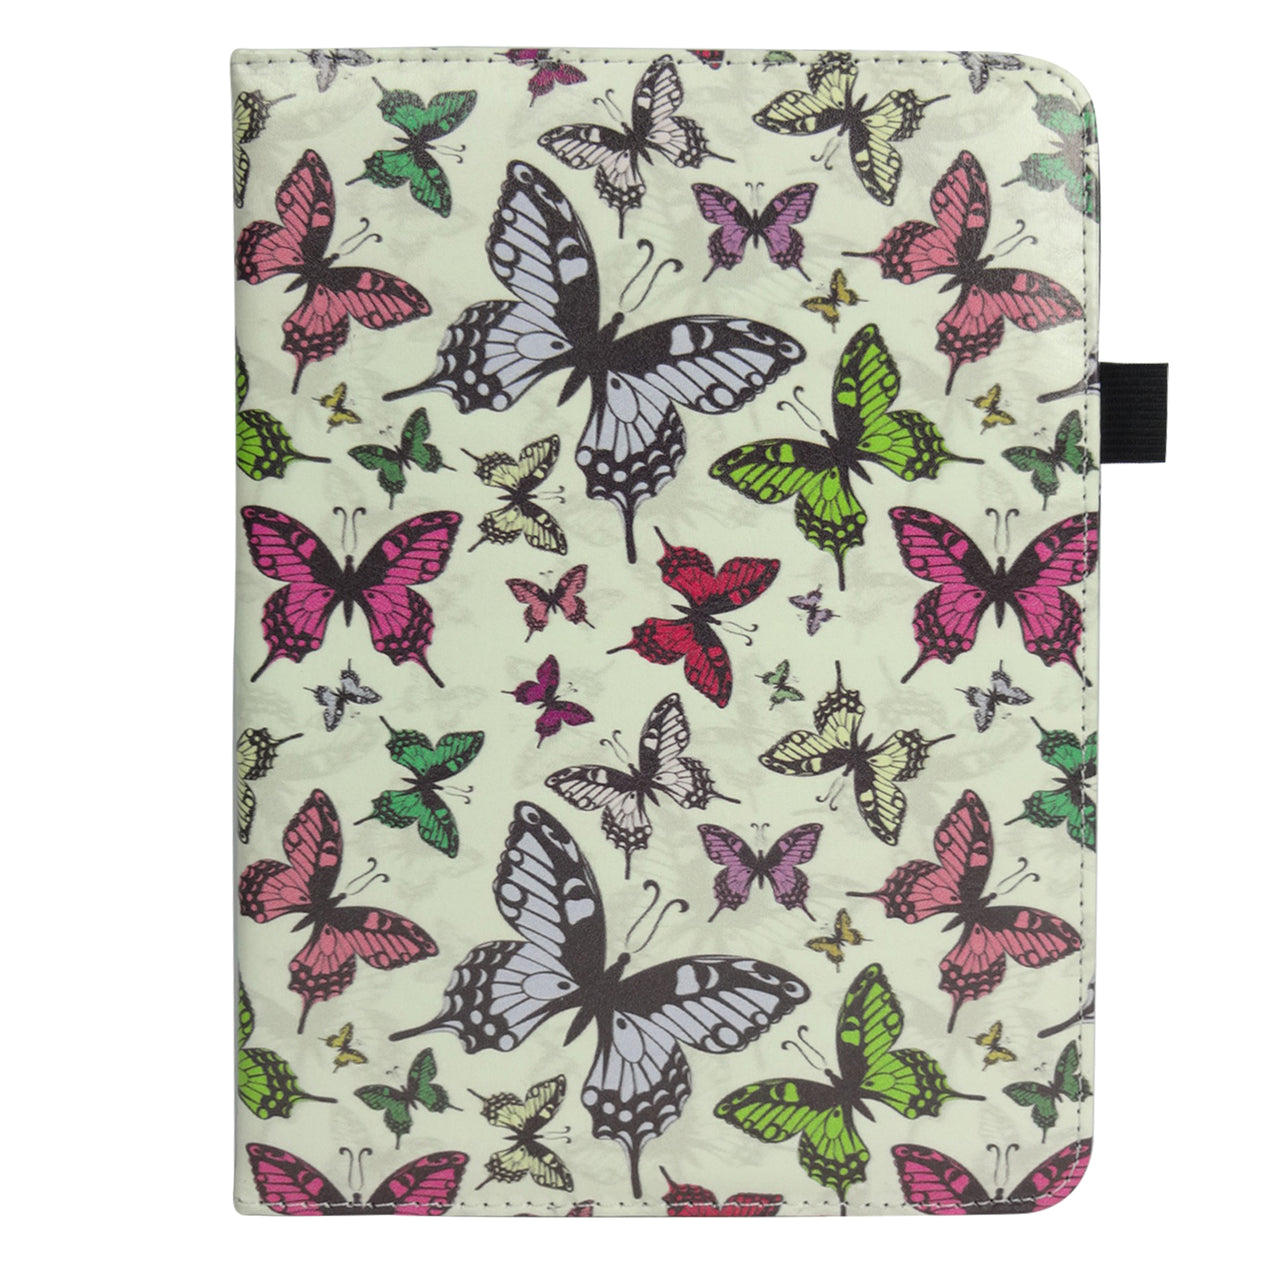 360° Rotating Universal Tablet Case - Butterflies - EMARTBUY